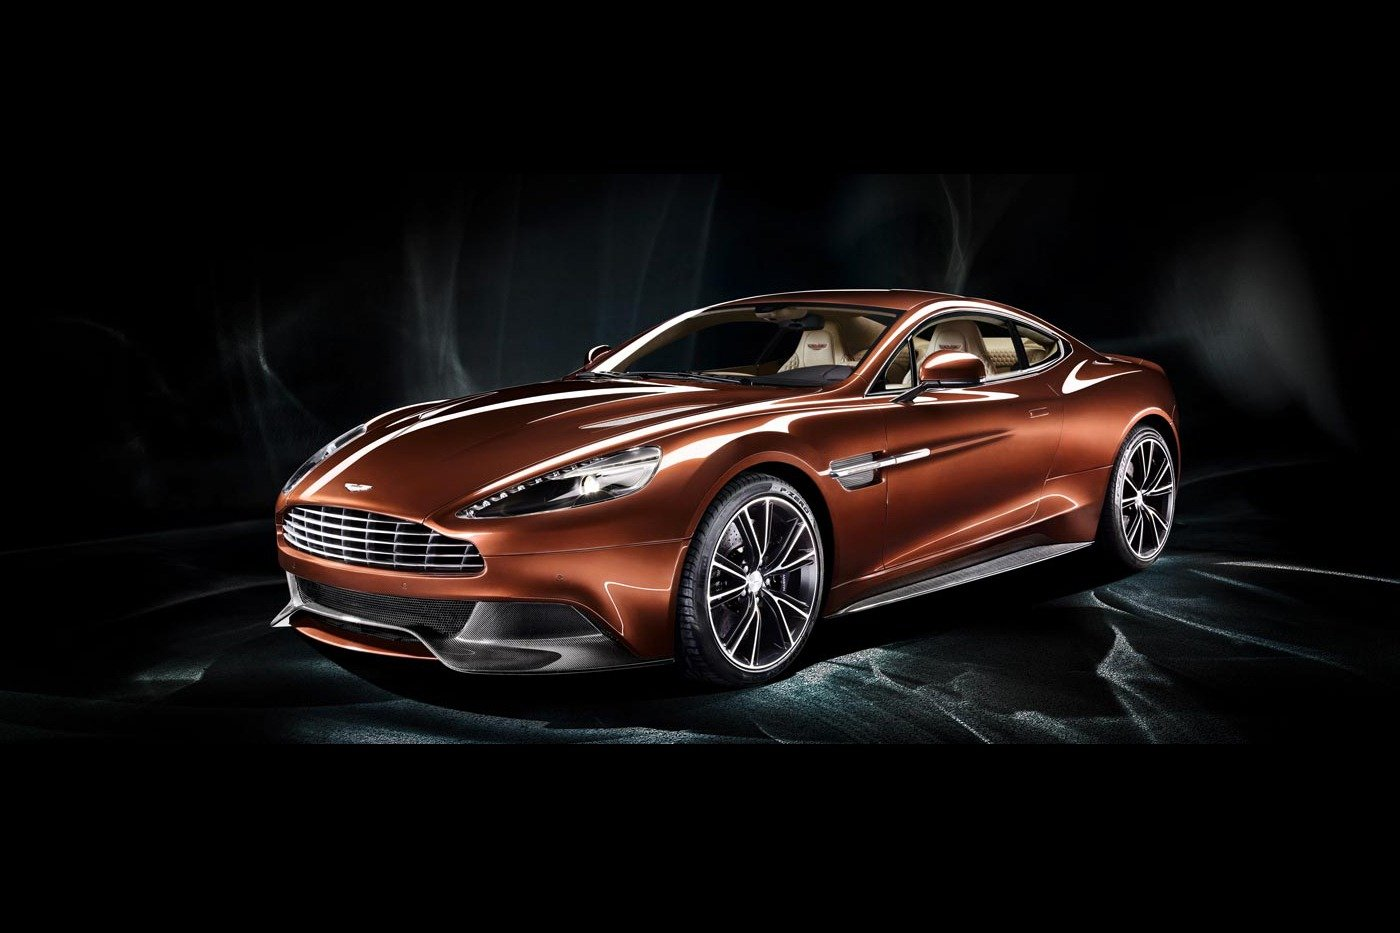 Latest World Of Cars Aston Martin Vanquish Images 1 Free Download